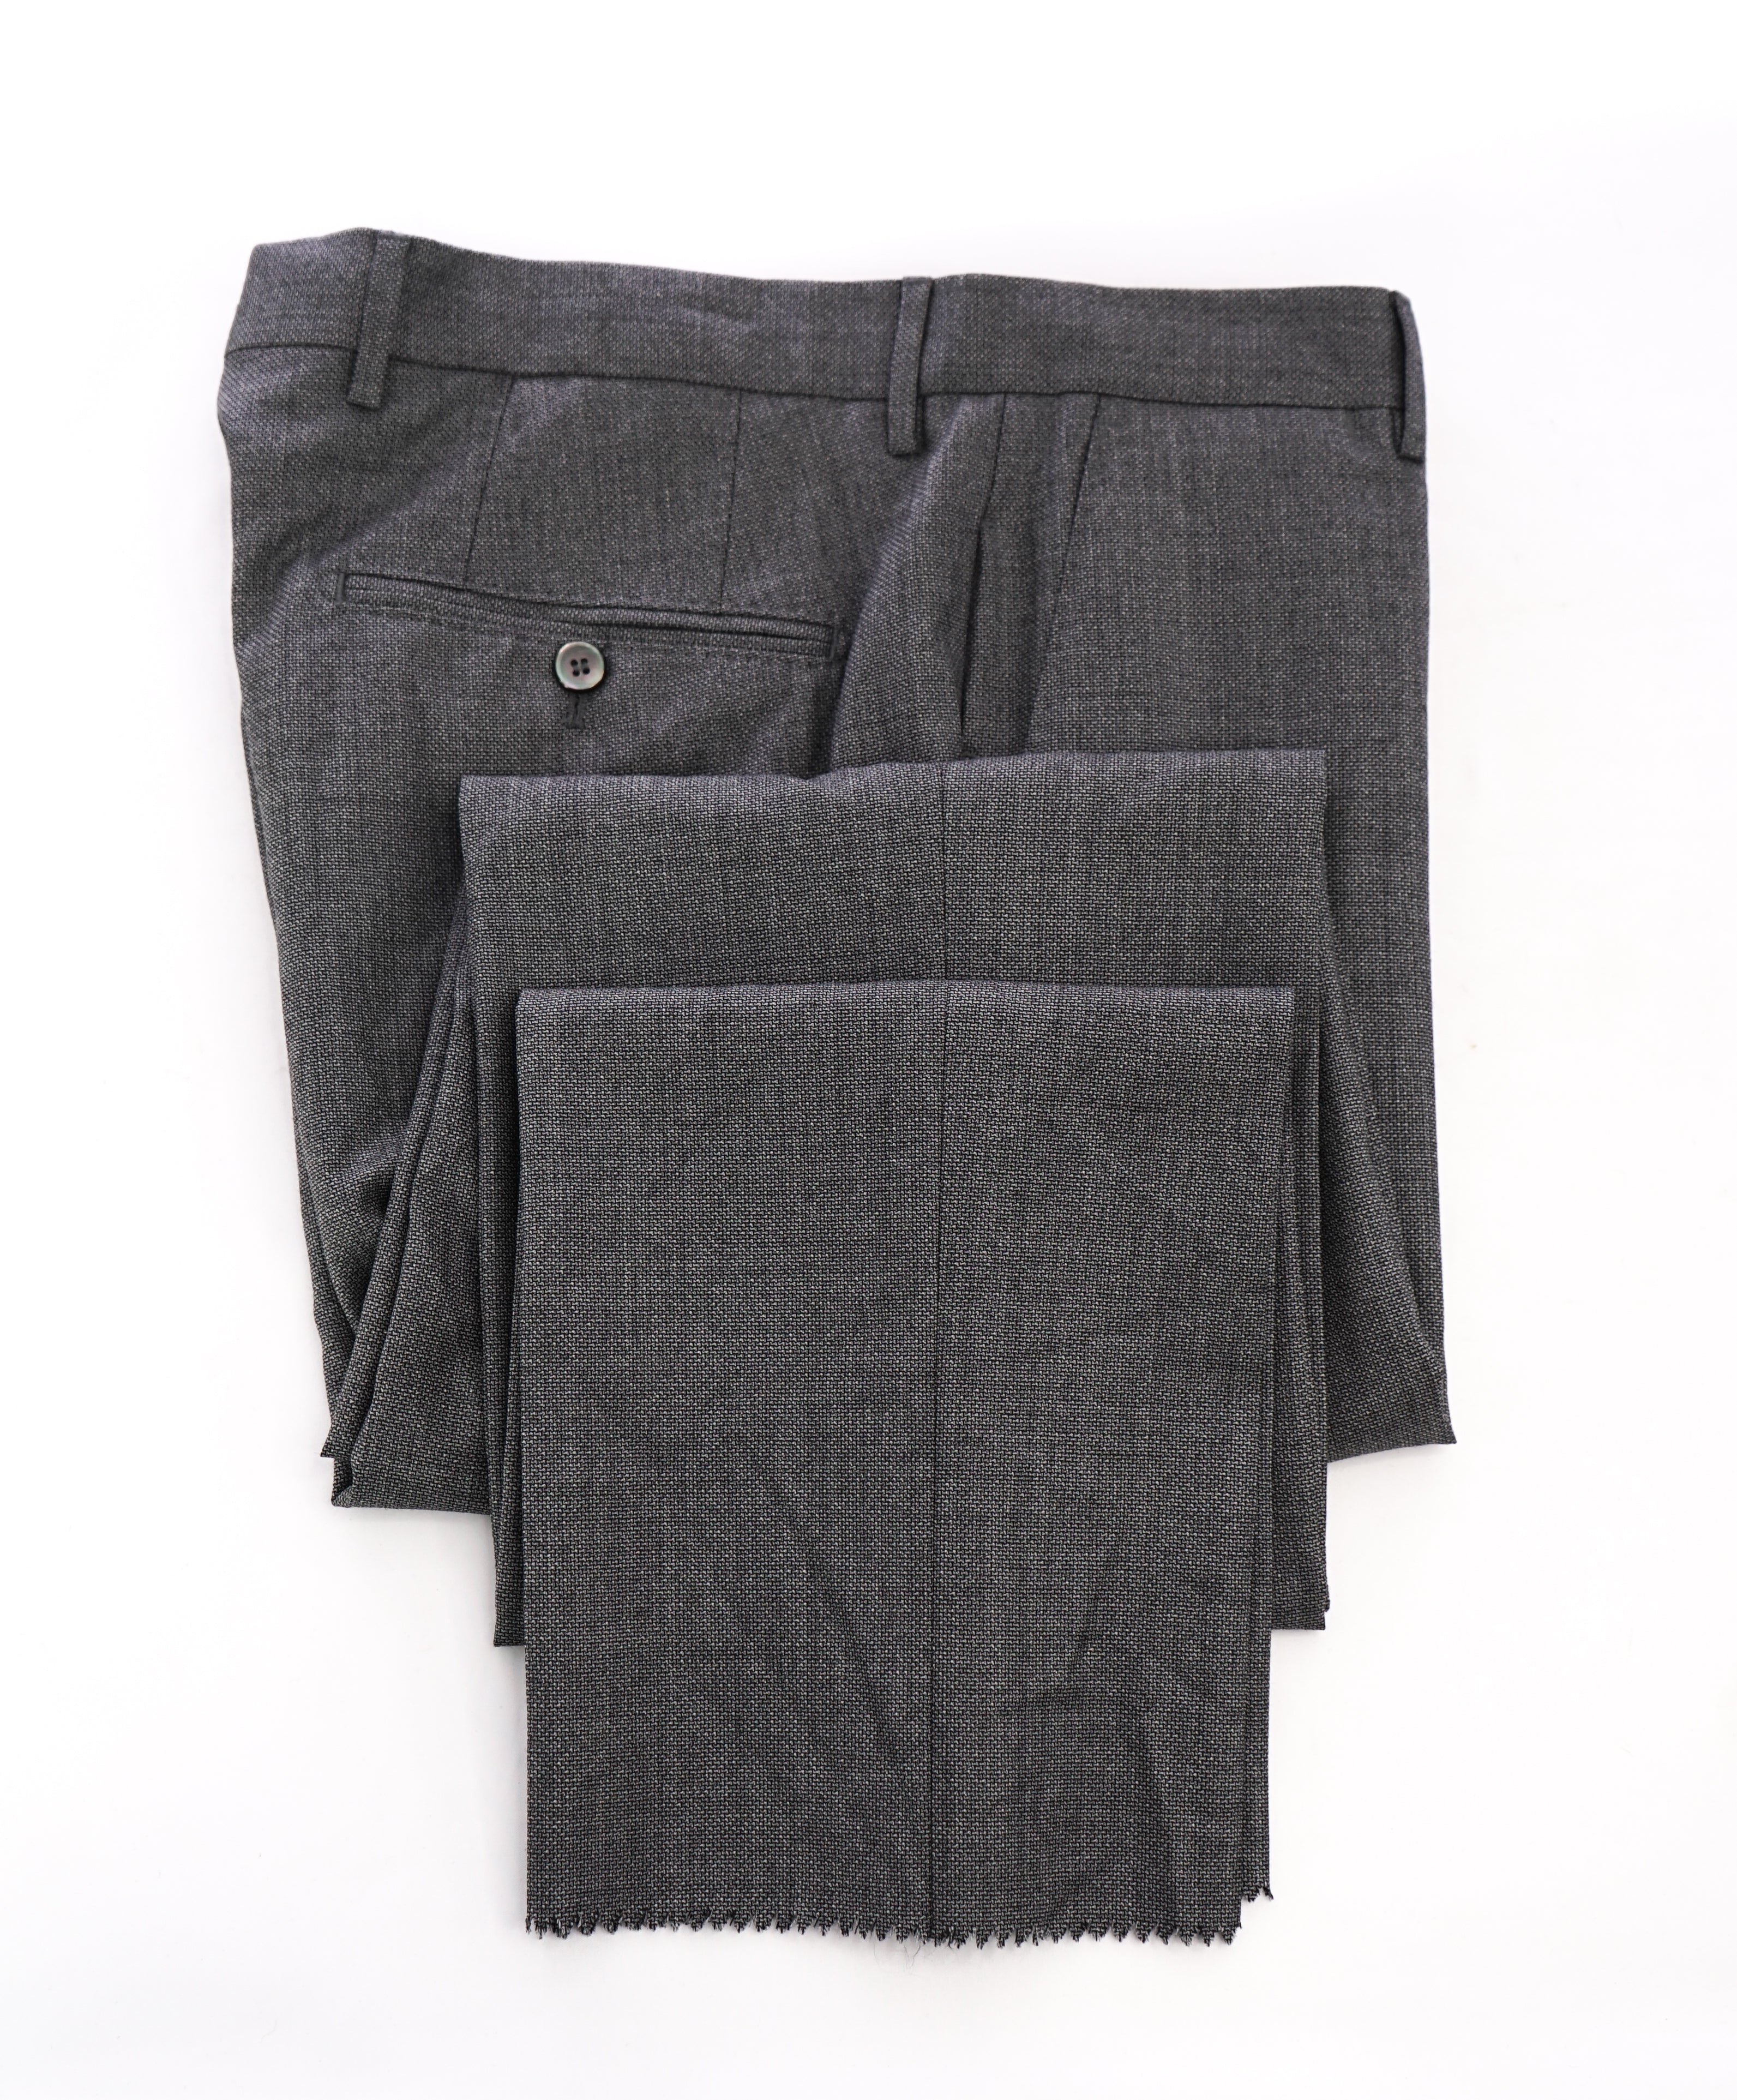 "HUGO BOSS - Textured Gray ""T- Hacer/Gage"" Pearl Button Flat Front Dress Pants - 32W"